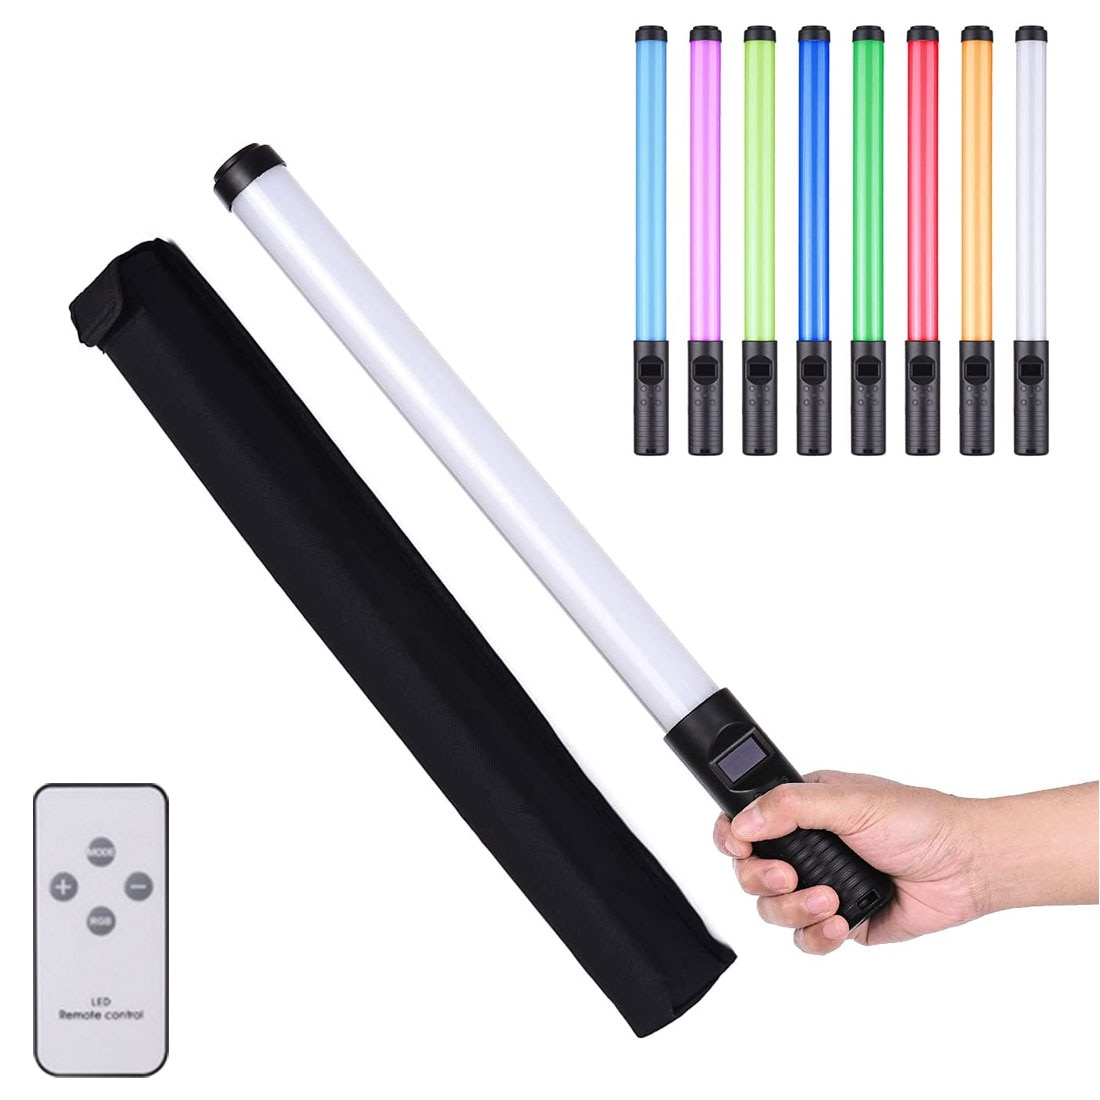 portable handheld led video light usb rechargeable photography lamp stick adjustable ice camera video light with remote control RGB Handheld LED Light Wand Colorful Photography Lighting Stick 10 Modes Rechargeable Photo Studio Fill Lamp For Youtube Video